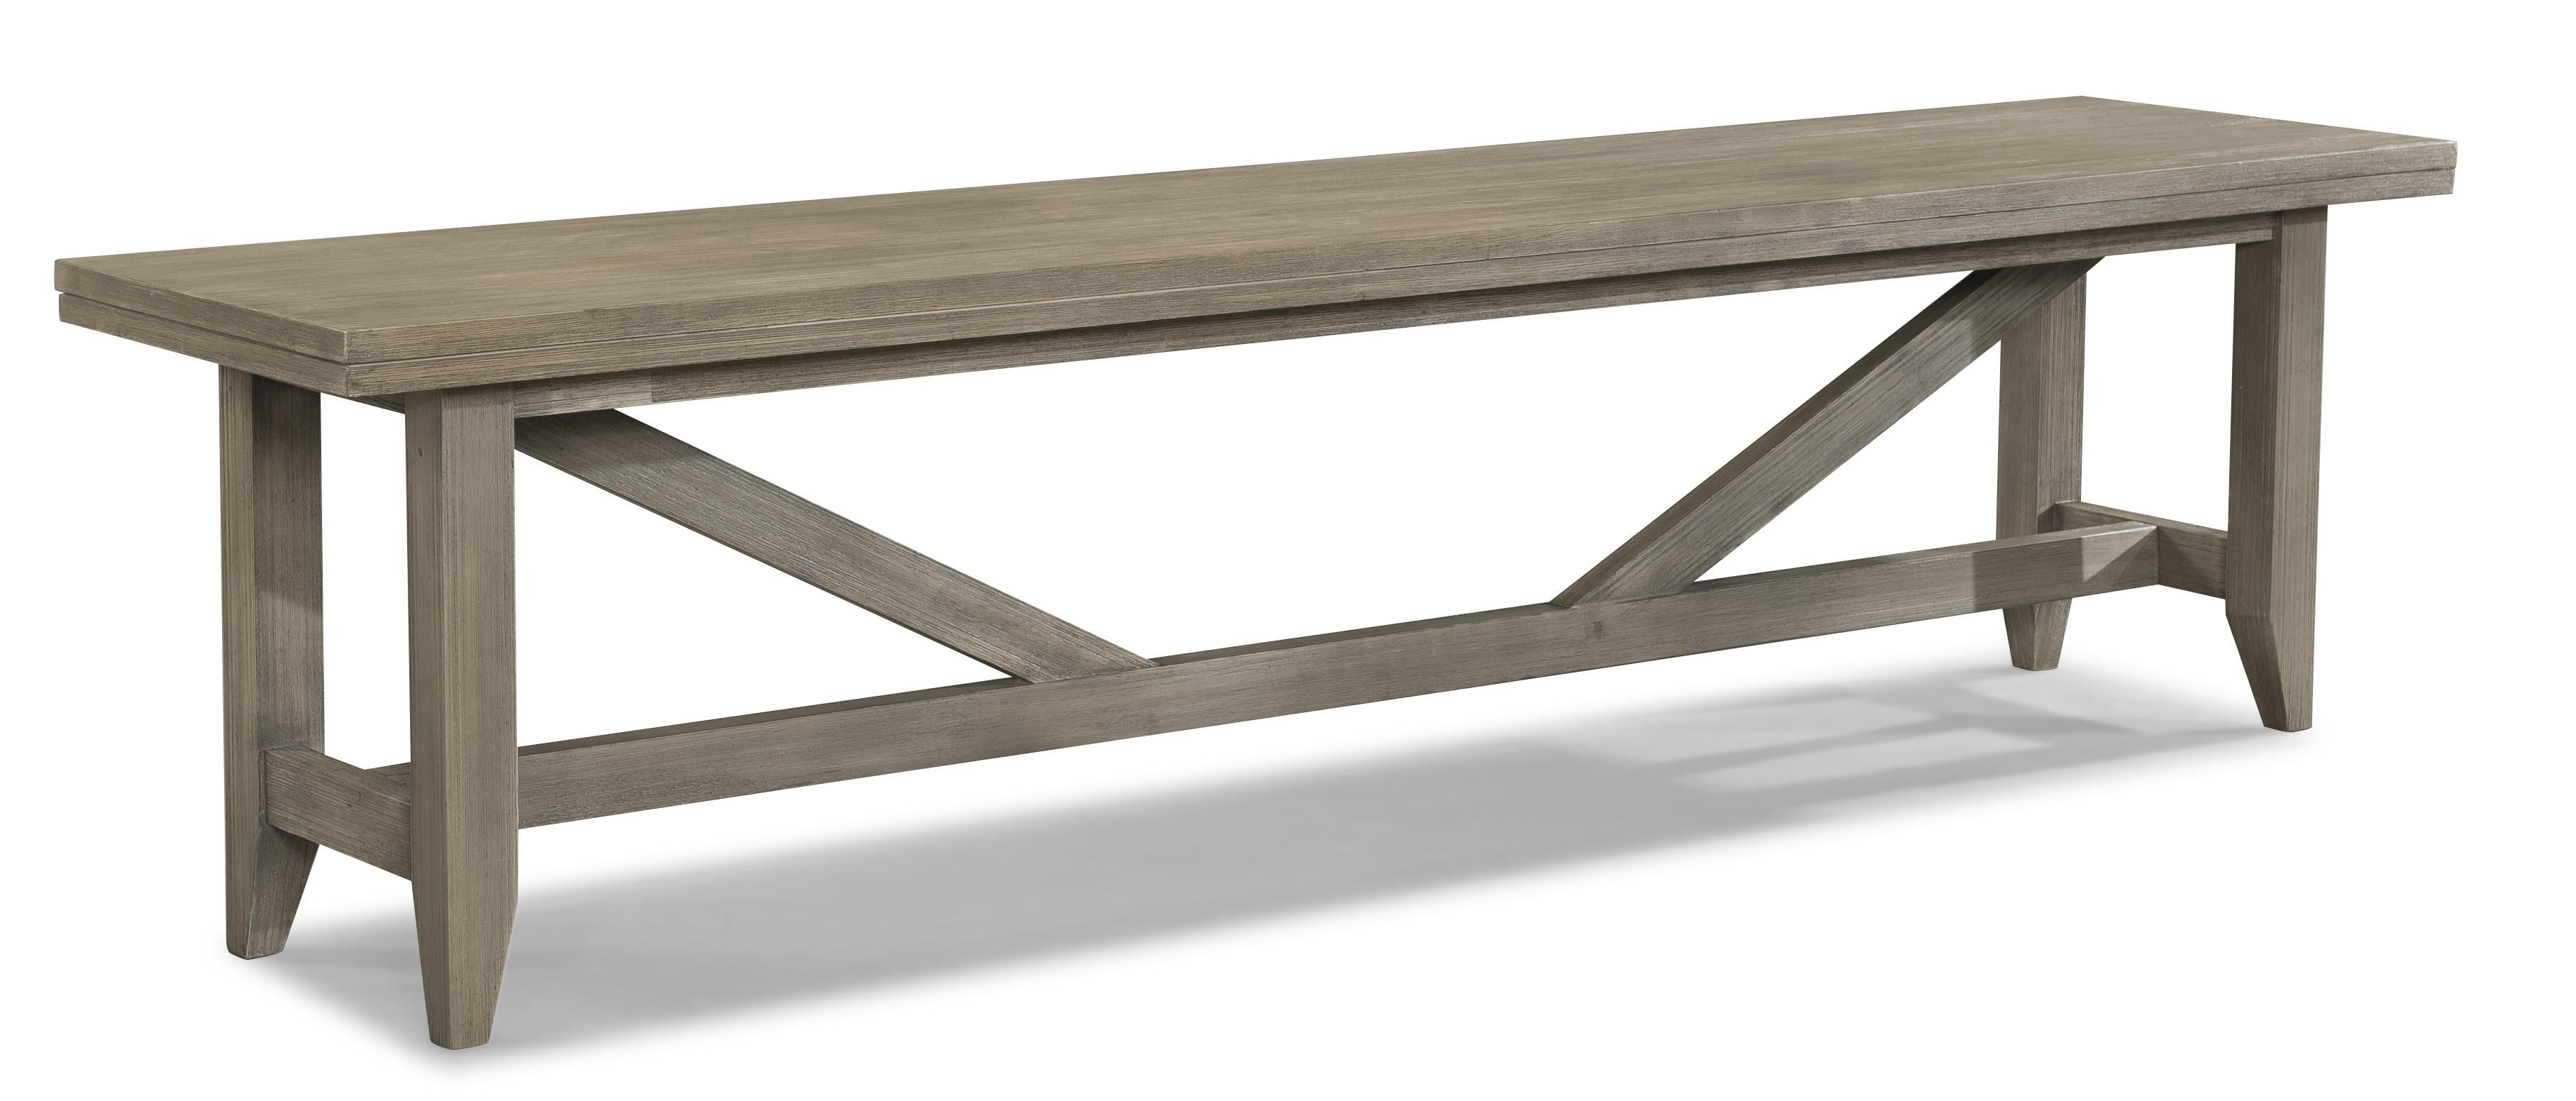 Long Weathered Dining Bench By Cresent Fine Furniture Wood Bench Solid Wood Benches Wood Storage Bench